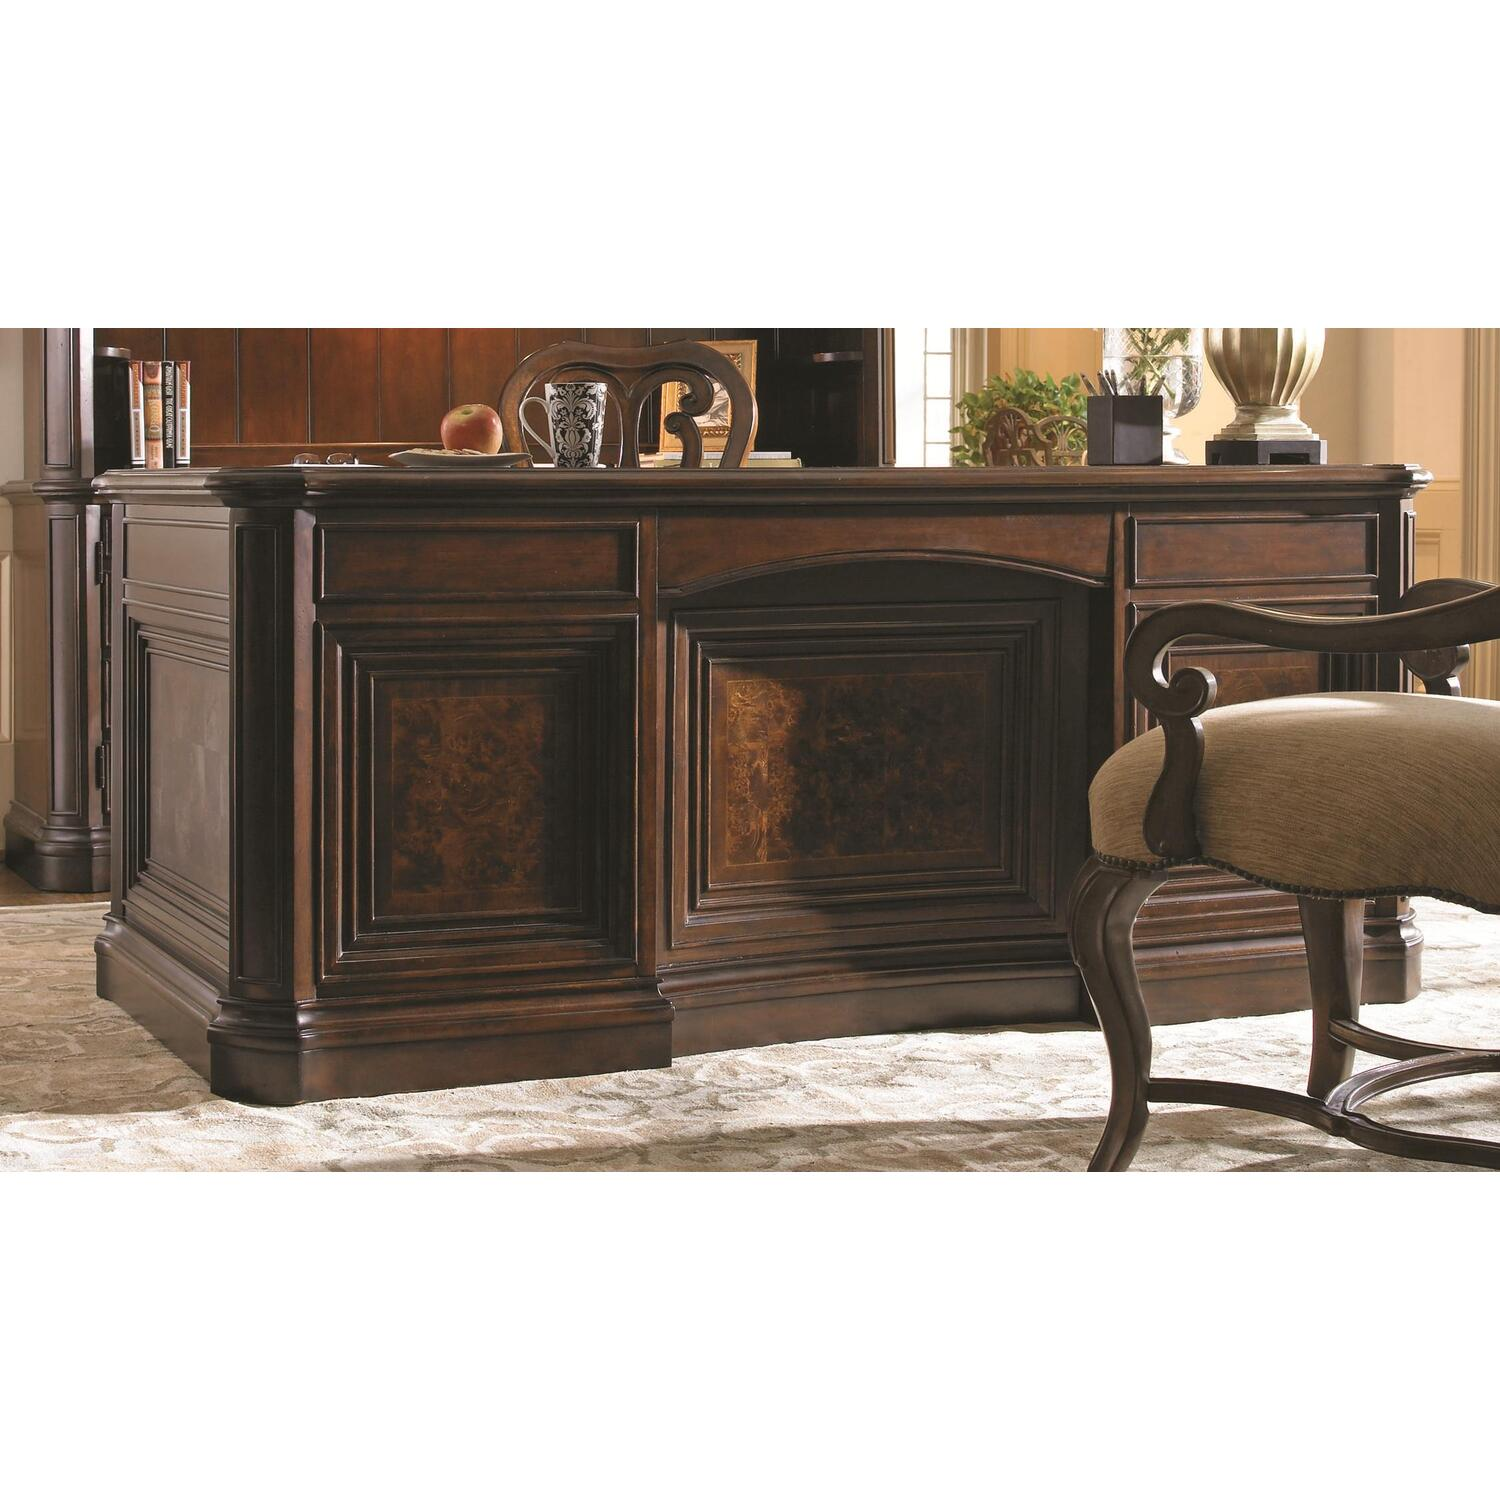 An Executive Desk Is The Desk Of Selection For Those Who Work From